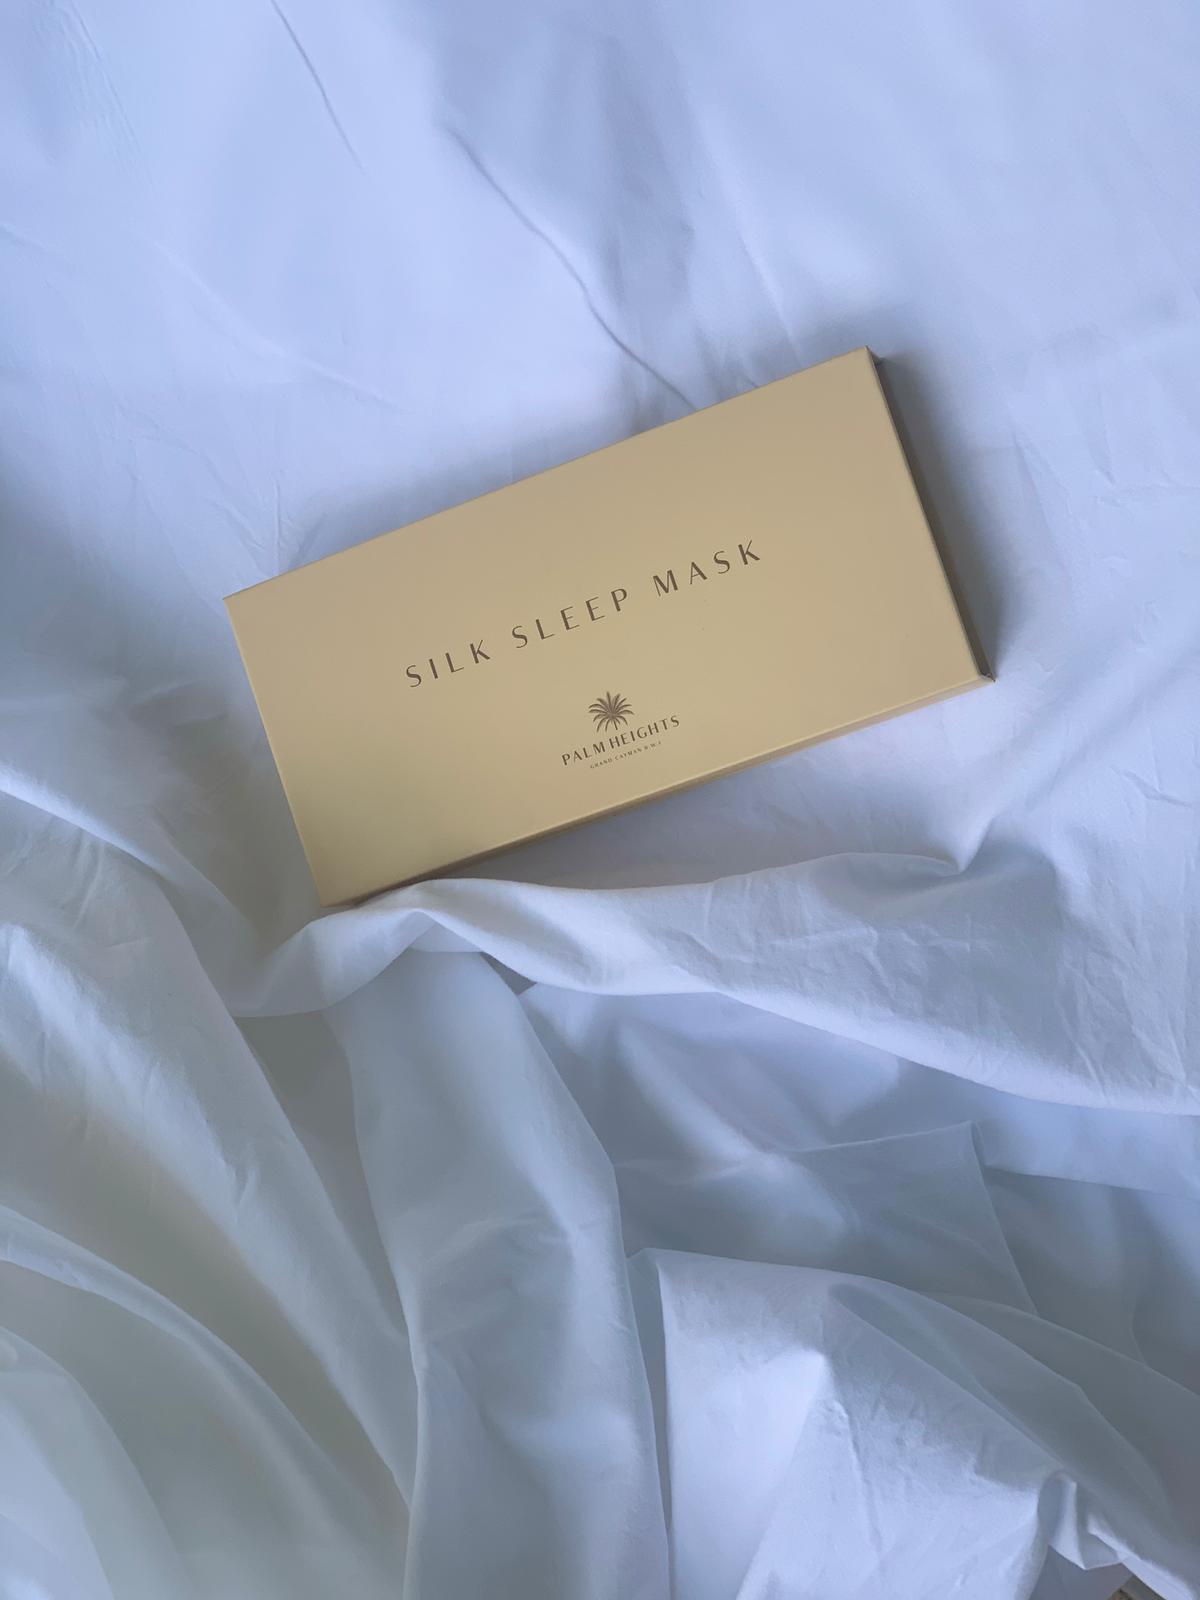 silk sleeping mask gift box